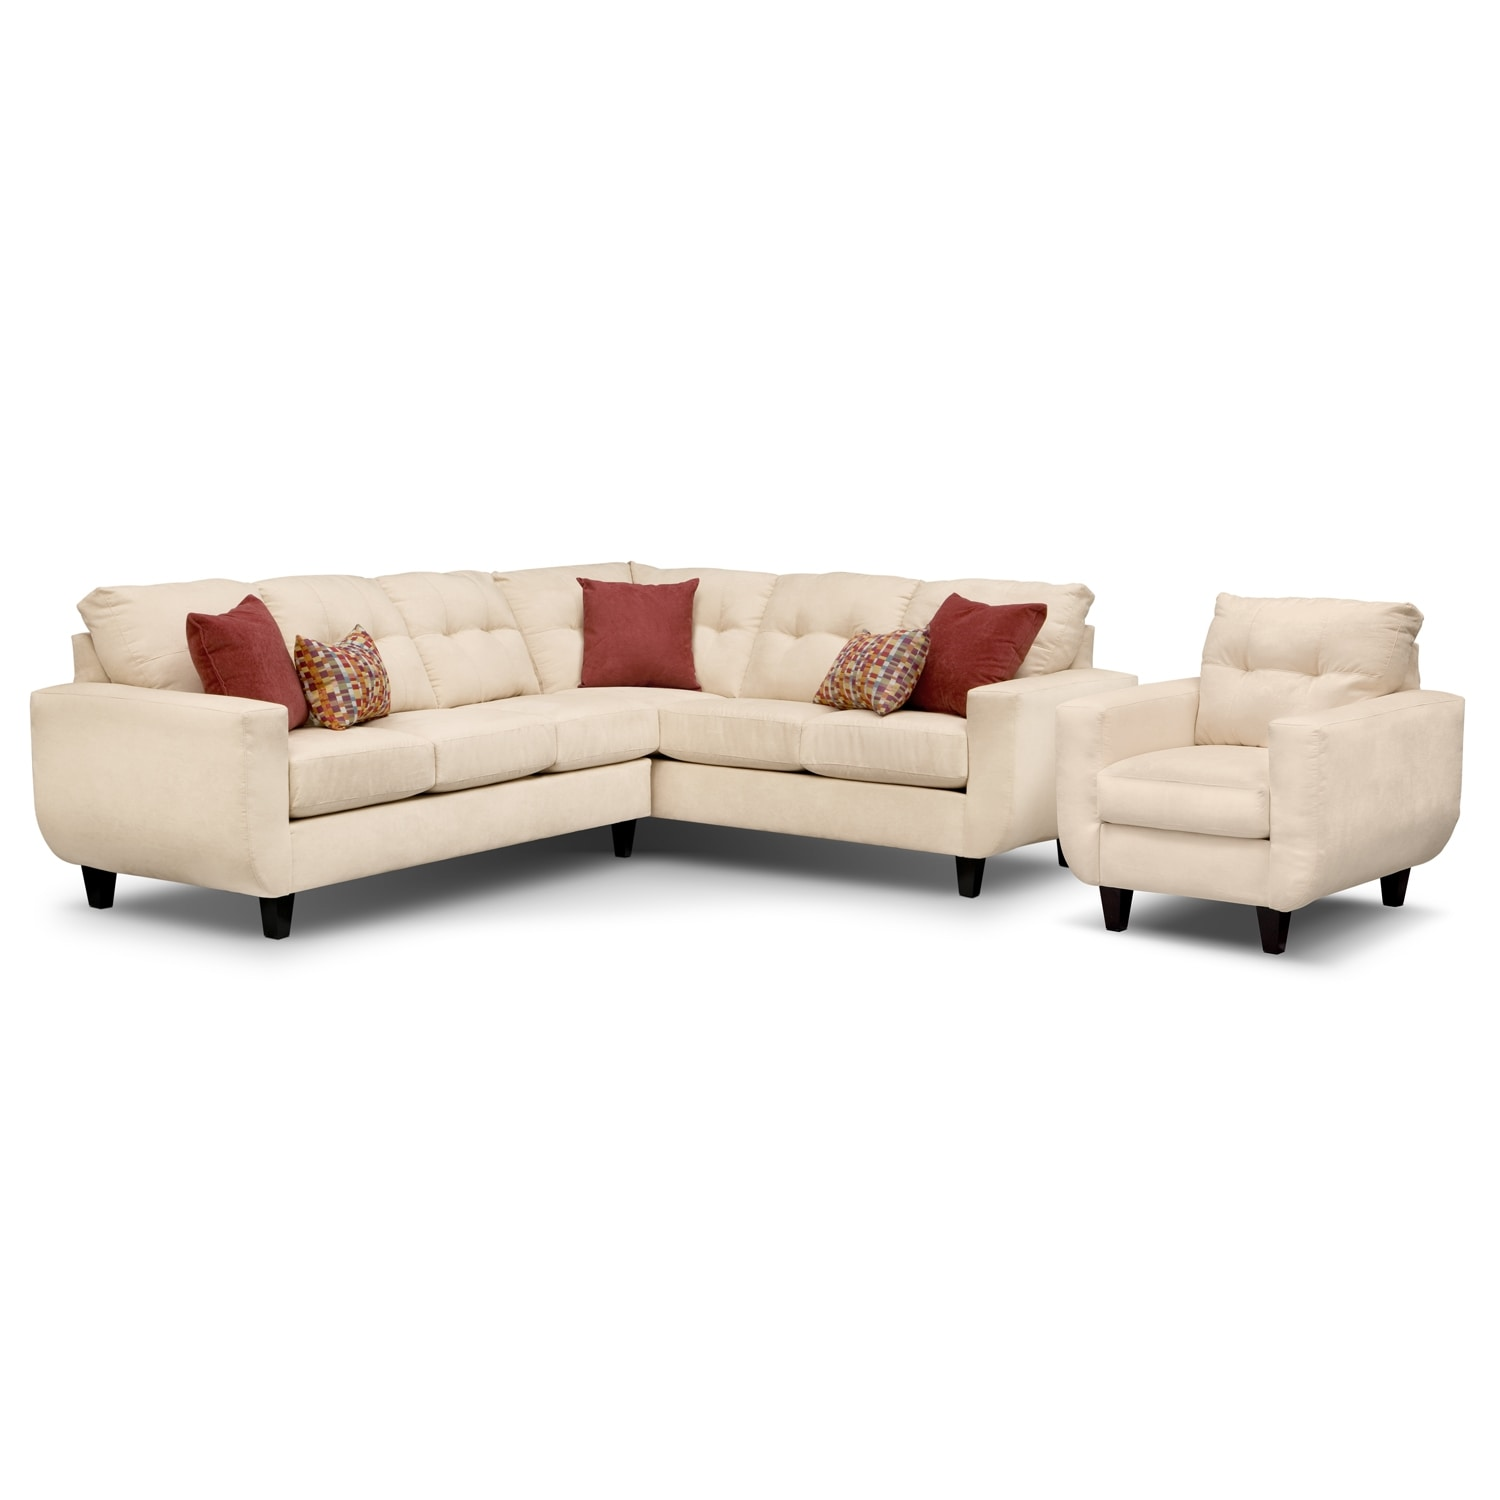 Living Room Furniture - West Village Cream II 2 Pc. Sectional and Chair